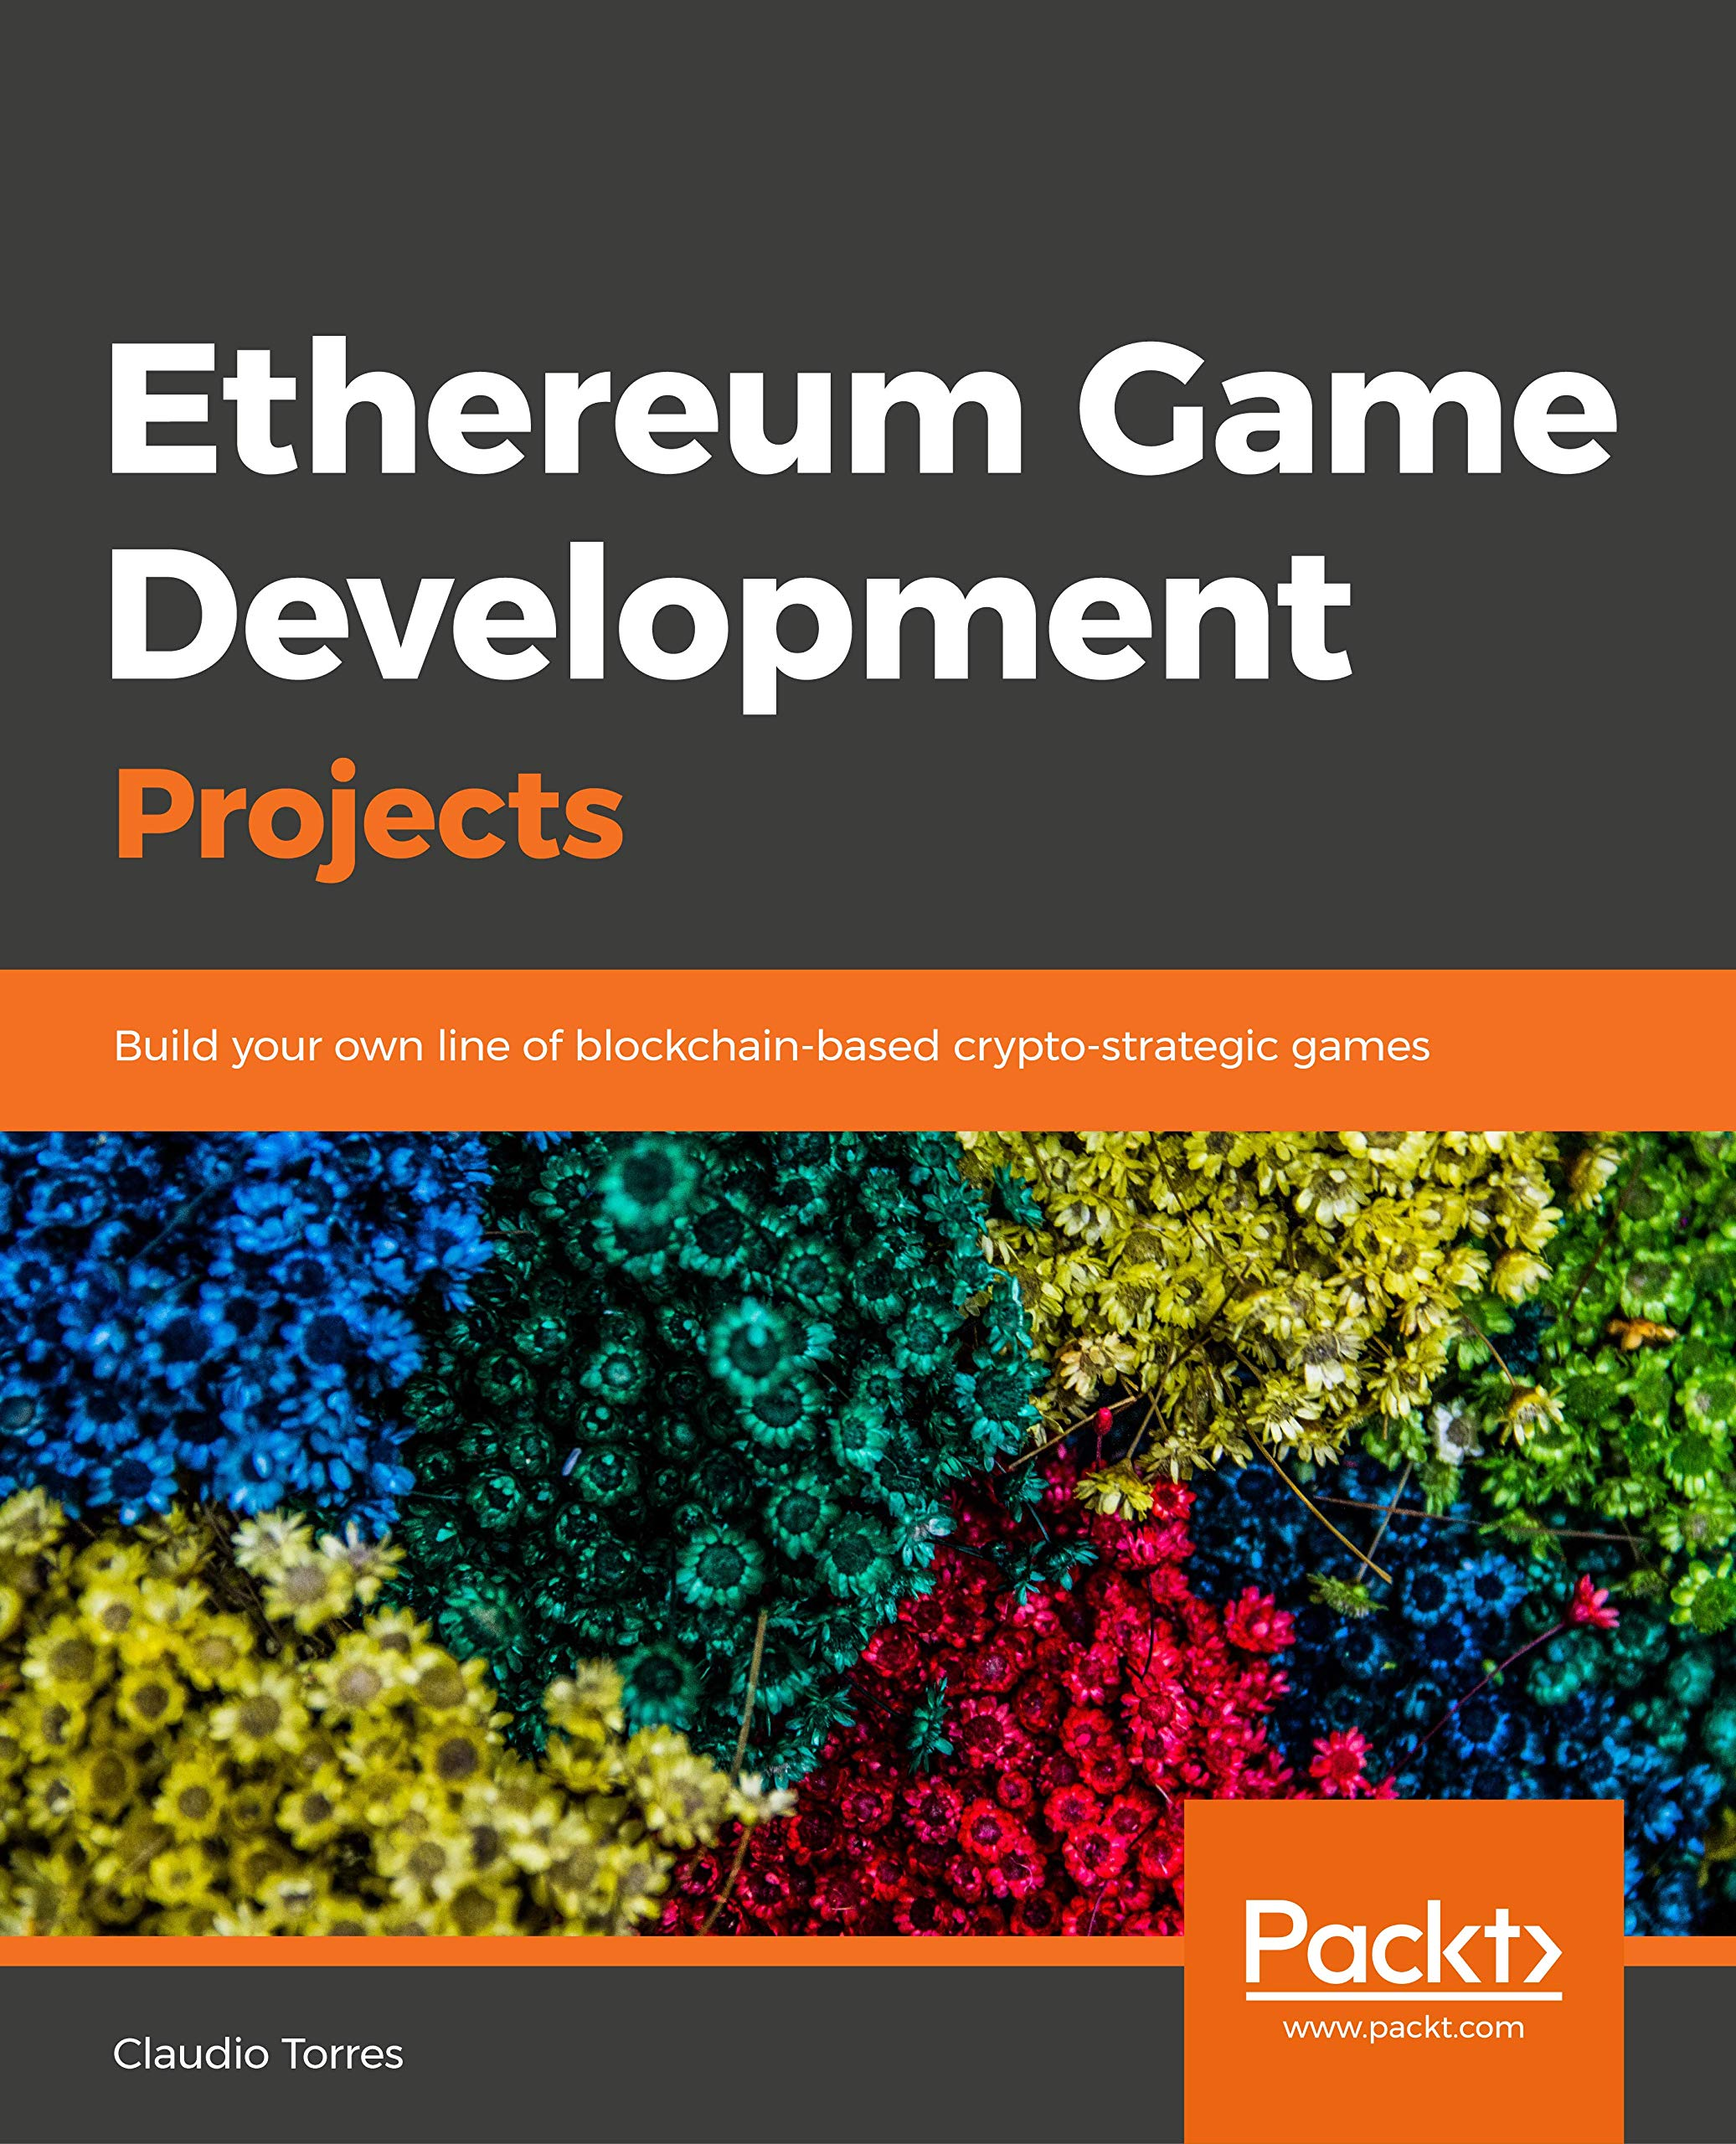 games using cryptocurrency